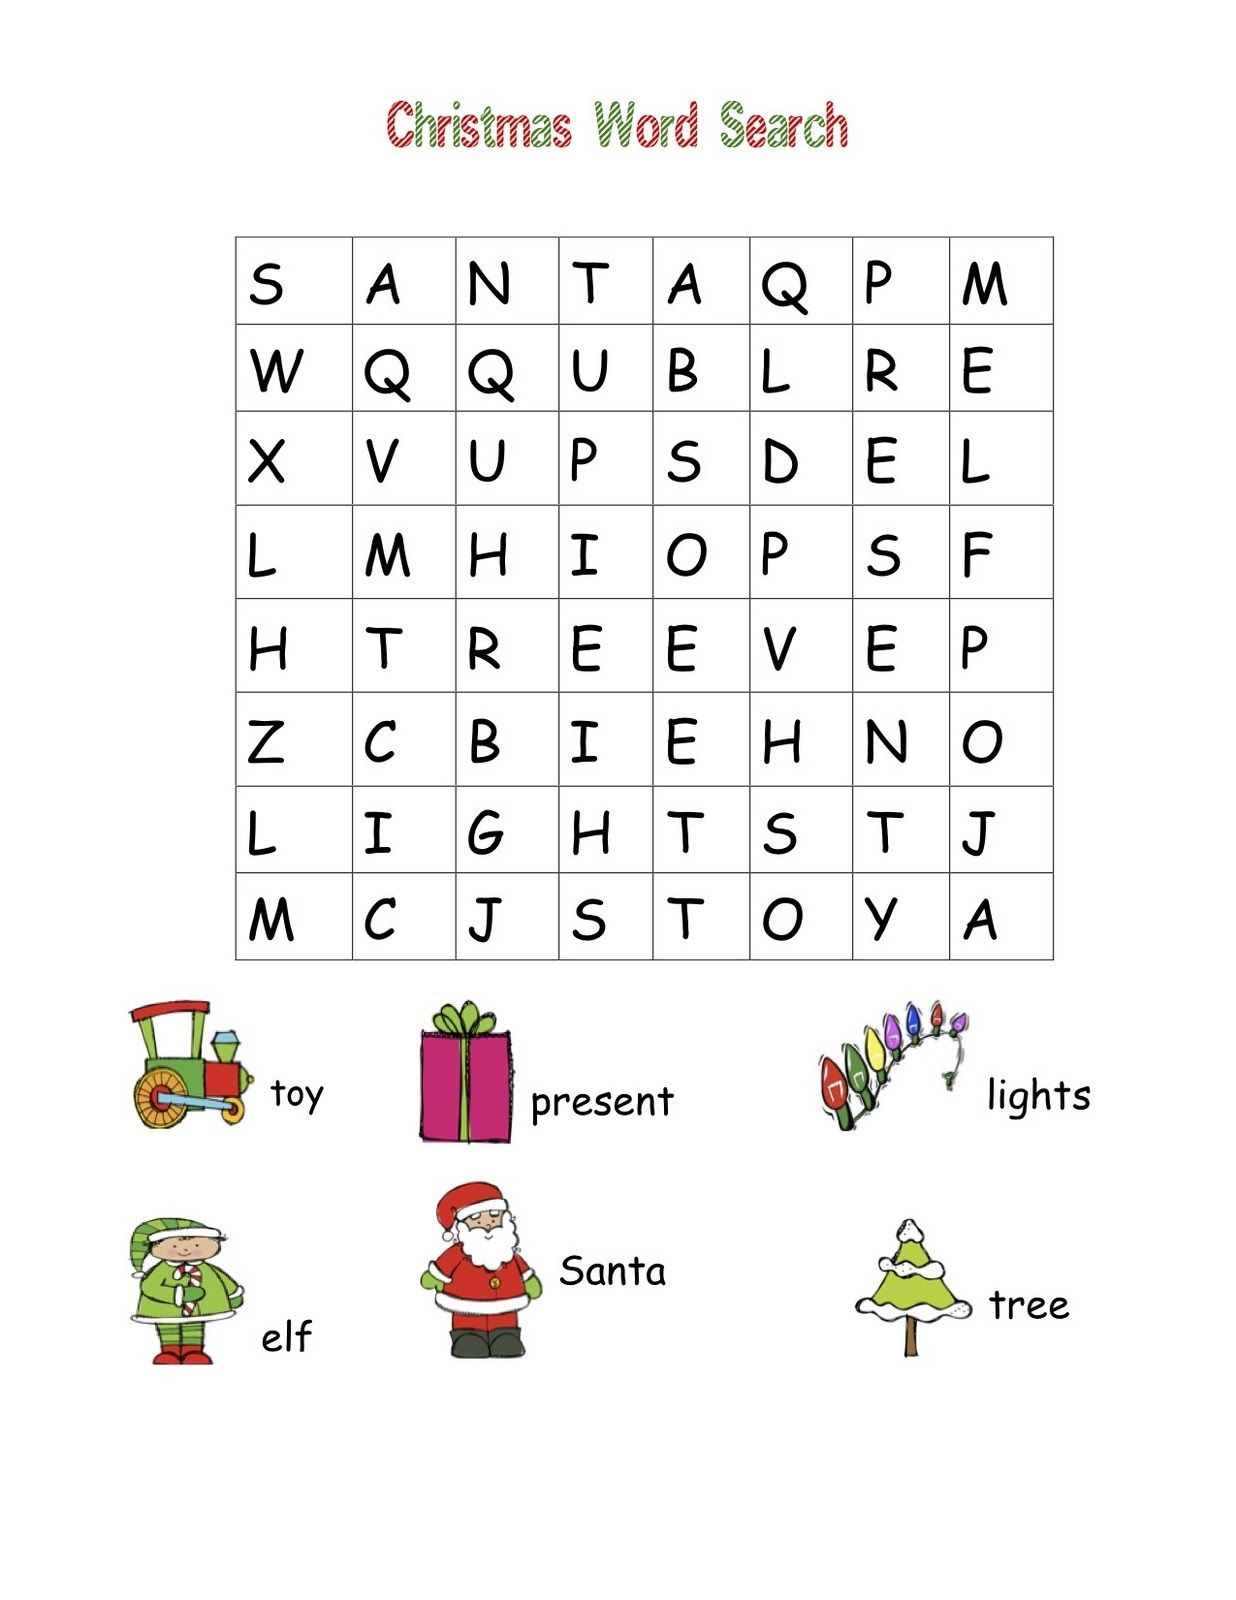 Tactueux image for kindergarten word search printable